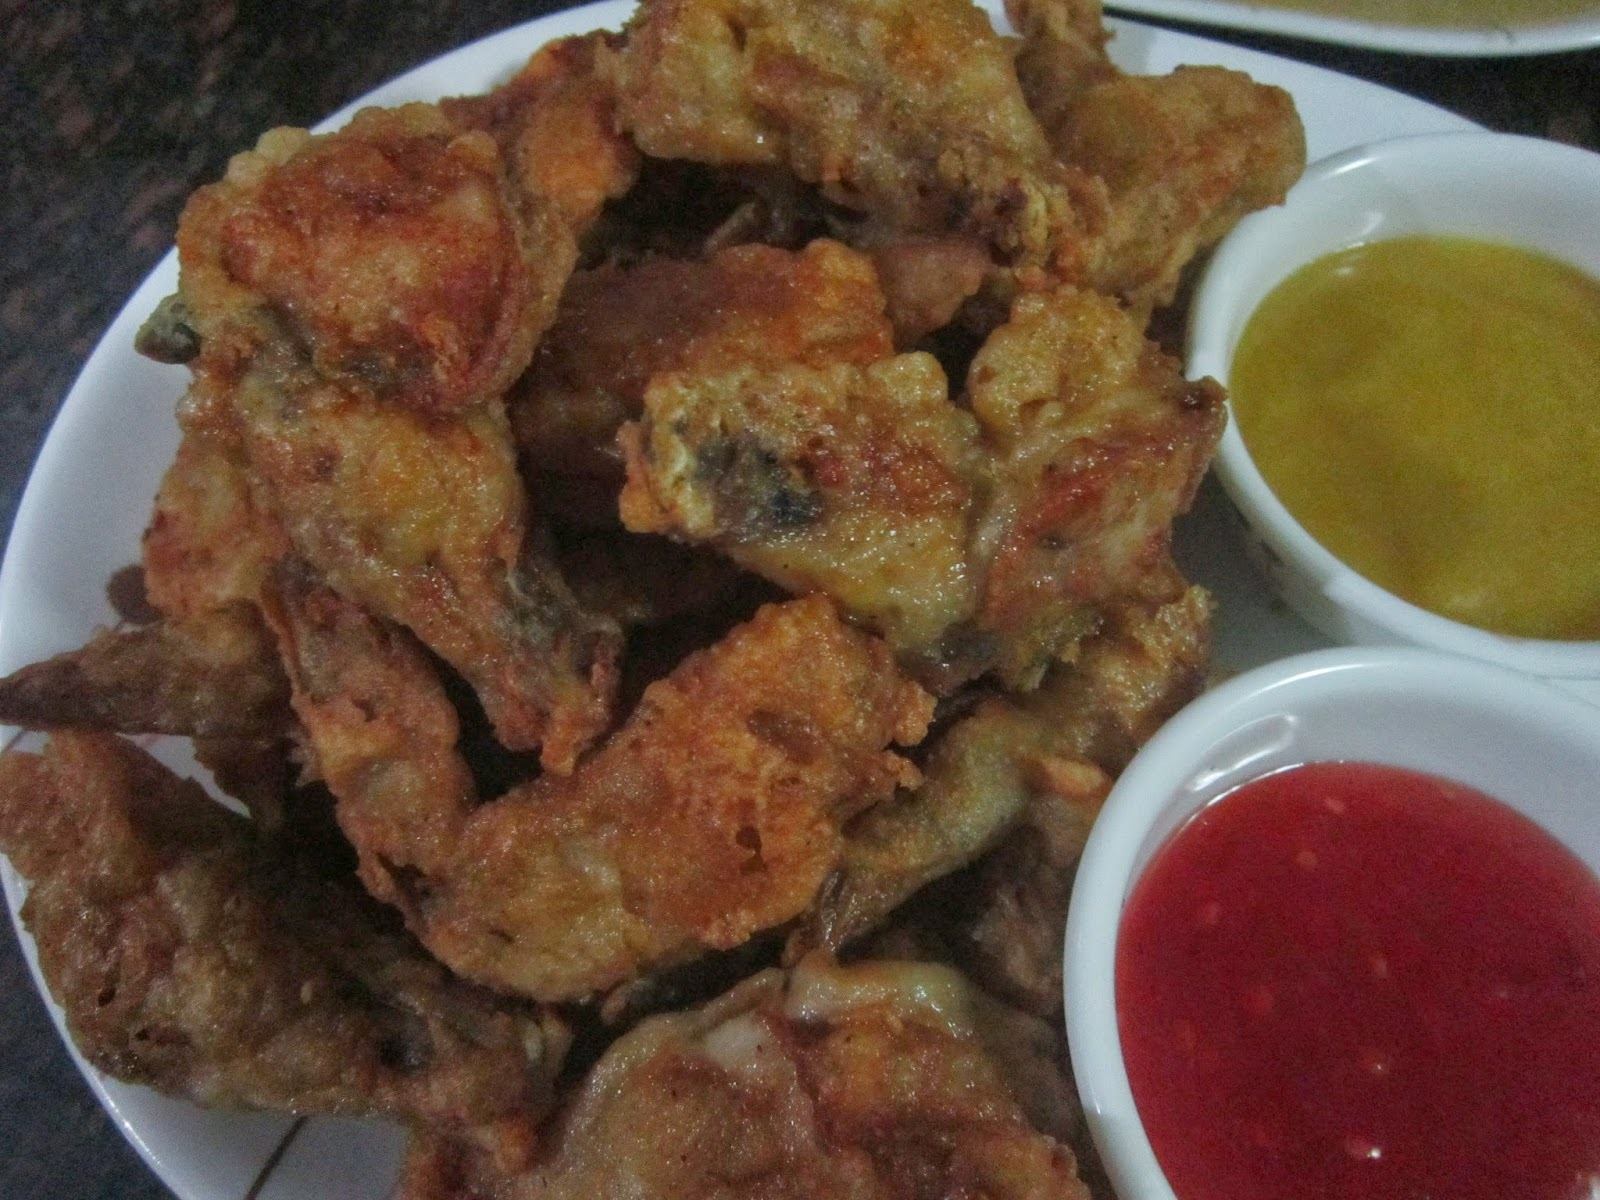 BON CHON STYLE FRIED CHICKEN